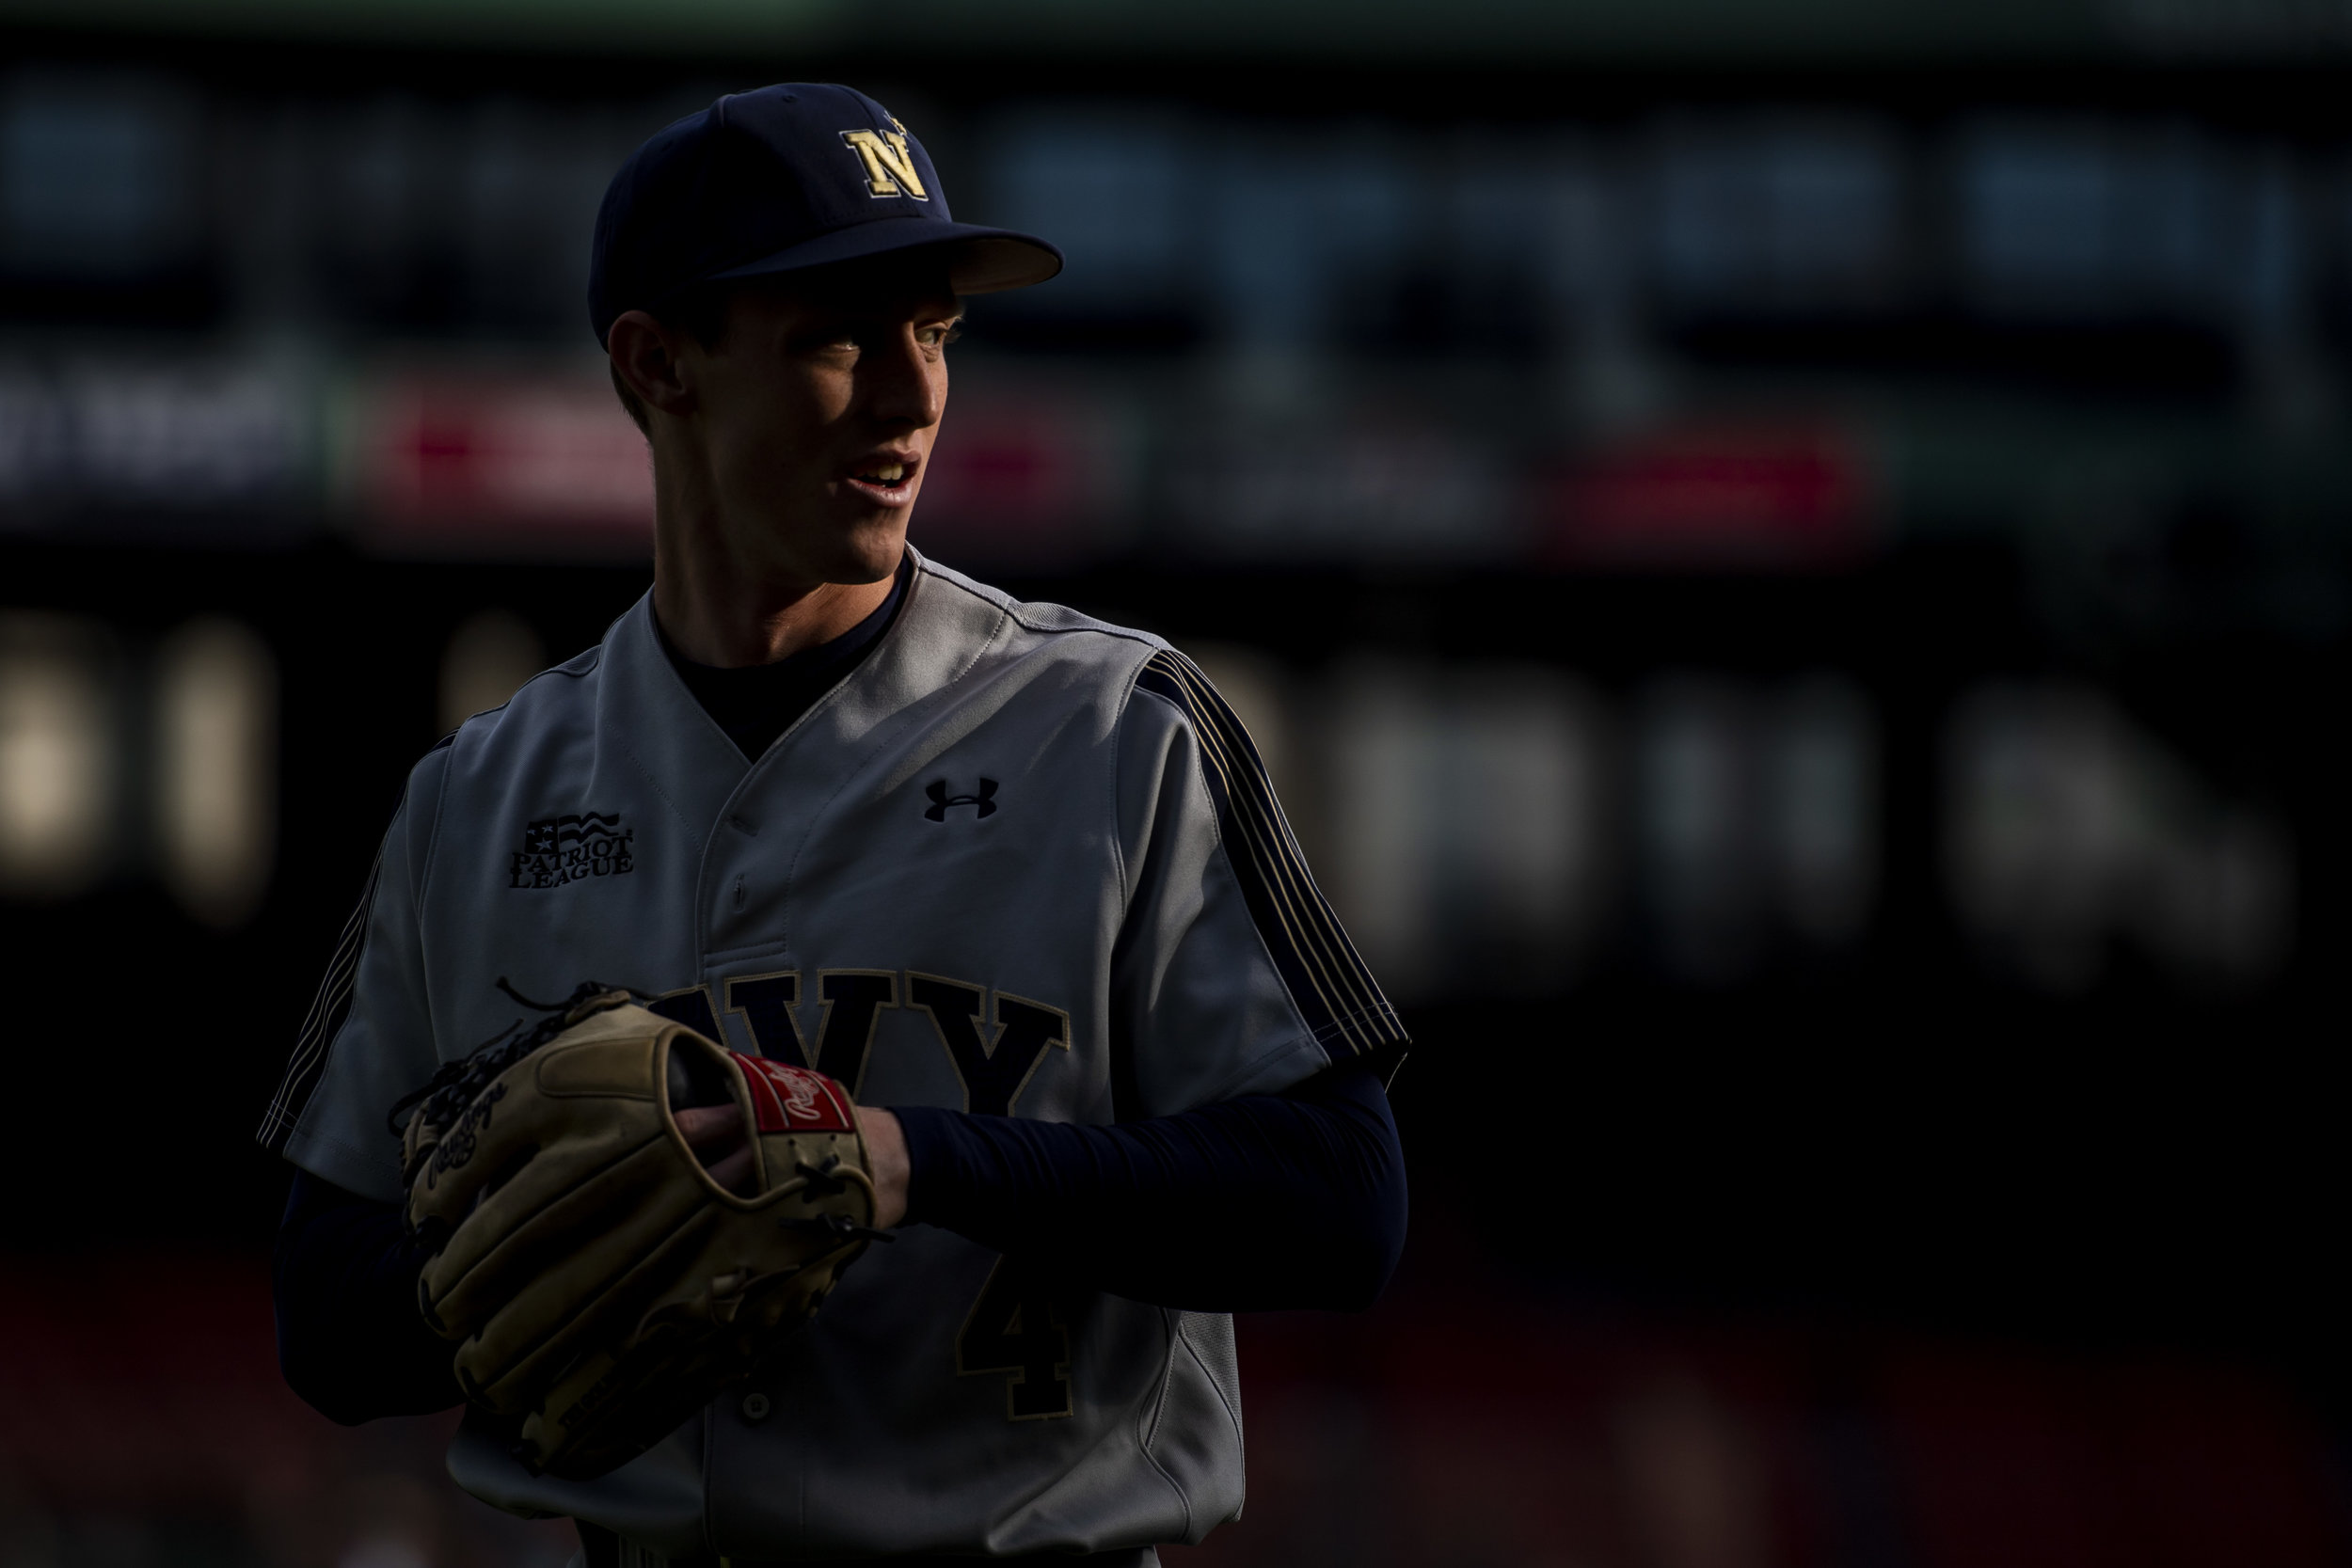 April 20, 2018, Boston, MA: A Navy player warms up in the outfield before Army - West Point faces The Naval Academy at Fenway Park in Boston, Massachusetts Friday, April 20, 2018. (Photo by Matthew Thomas/Boston Red Sox)